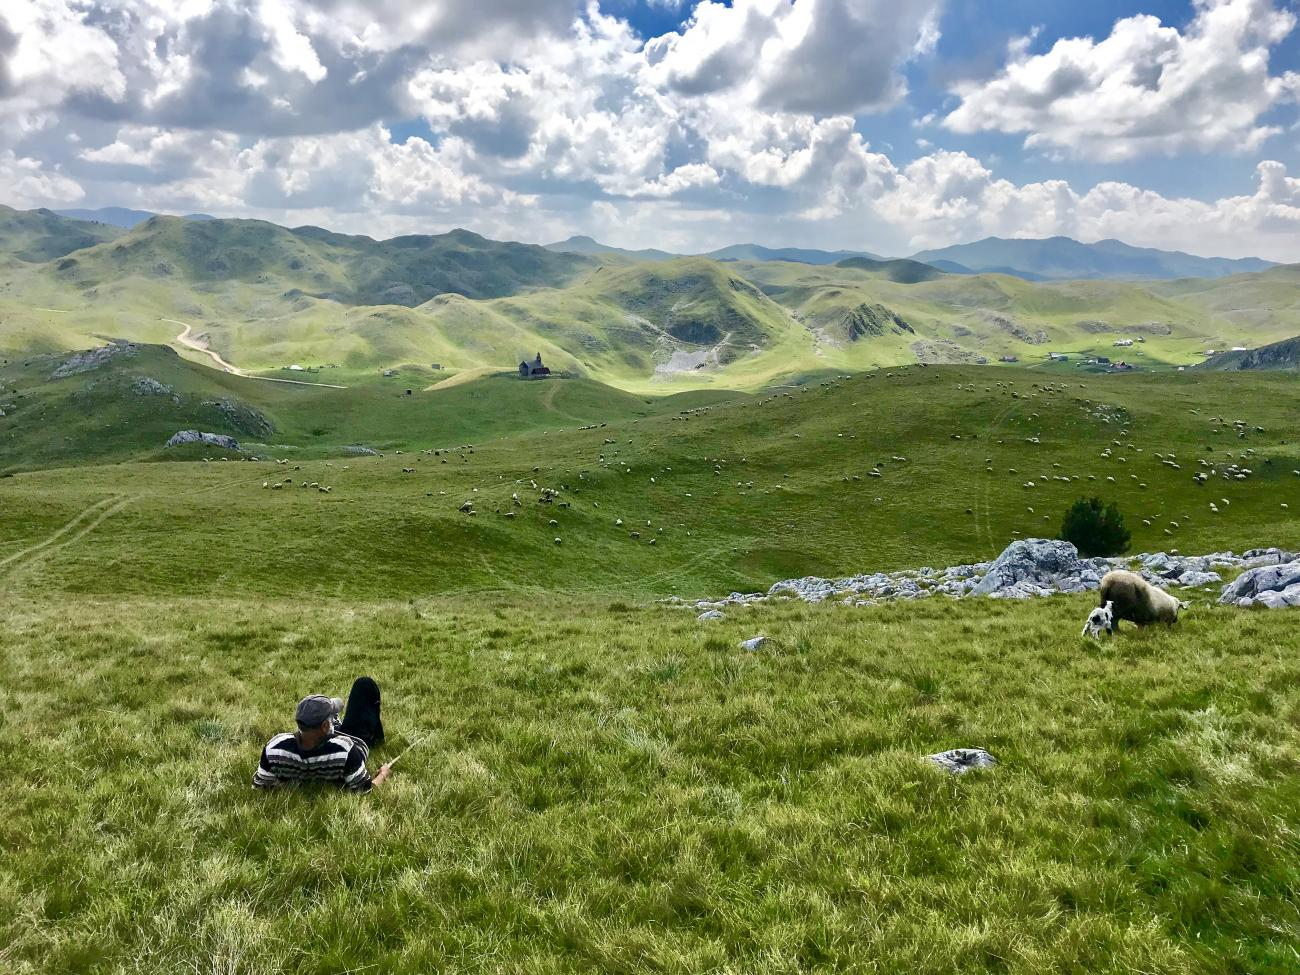 The Sinjajevina highlands - rolling green hills. In the background is a small church. In the foreground a man relaxes on the grass. To the right of the photo there is a sheep and lamb.